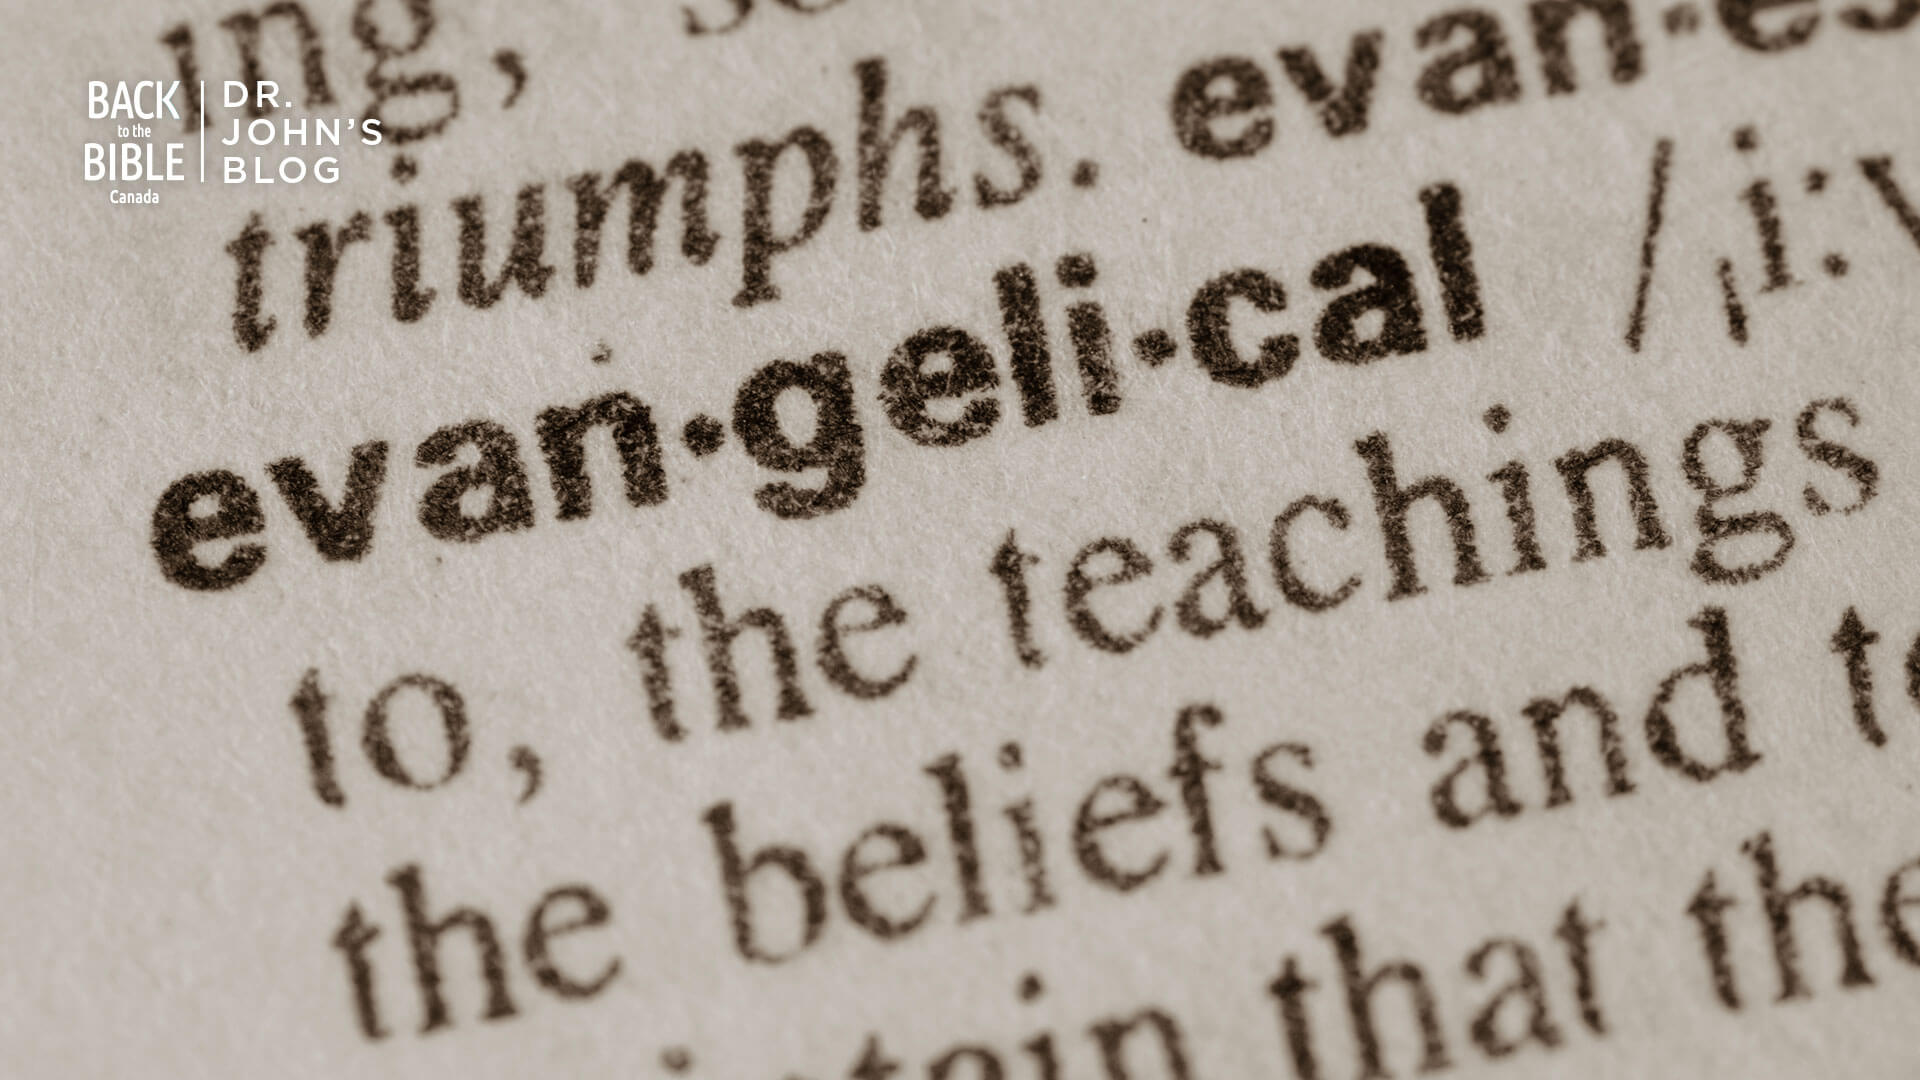 Evangelicals-Whats-in-a-Name